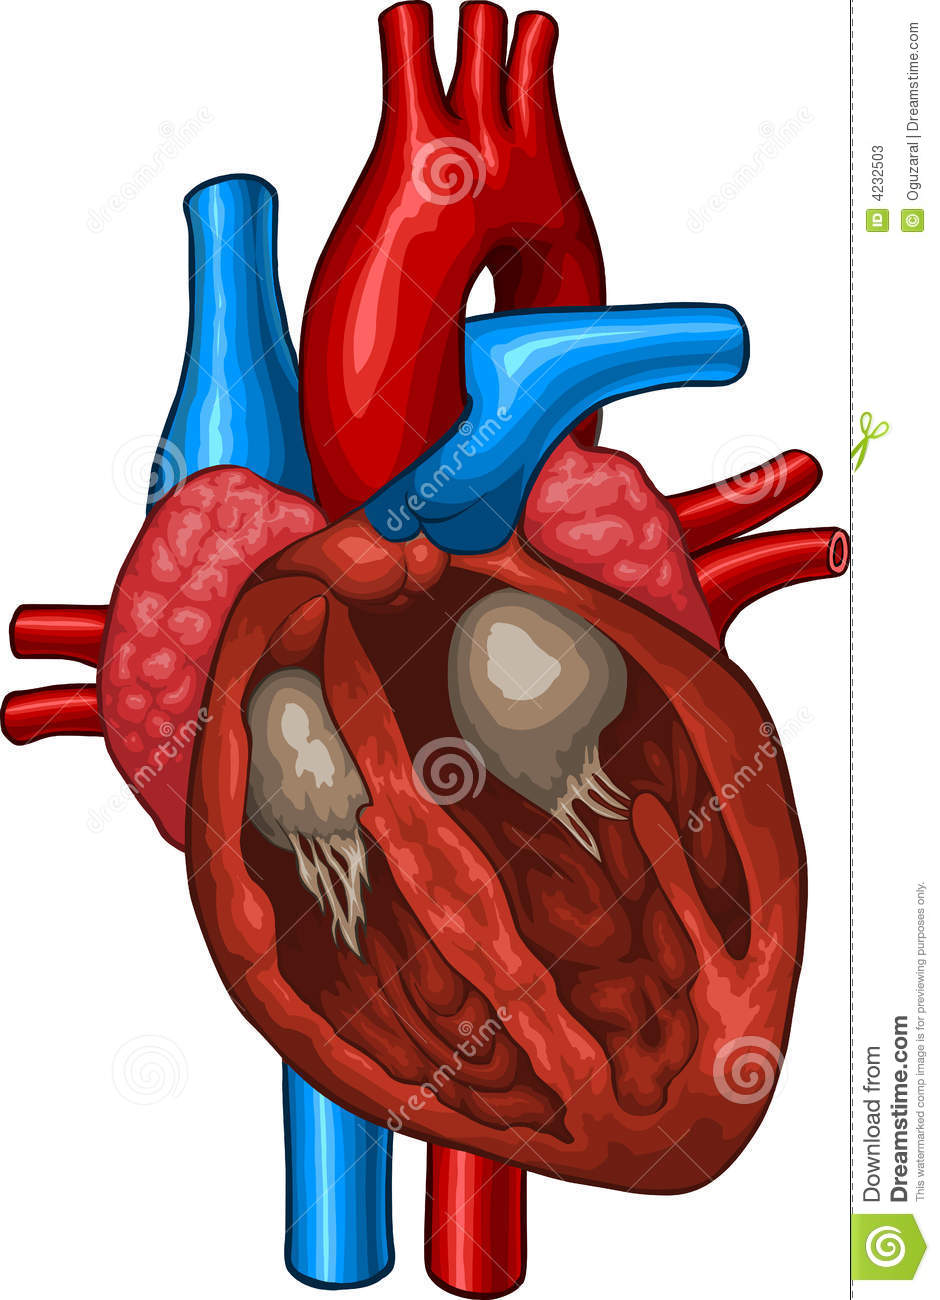 Human Heart Stock Vector  Illustration Of Chest  Anatomy